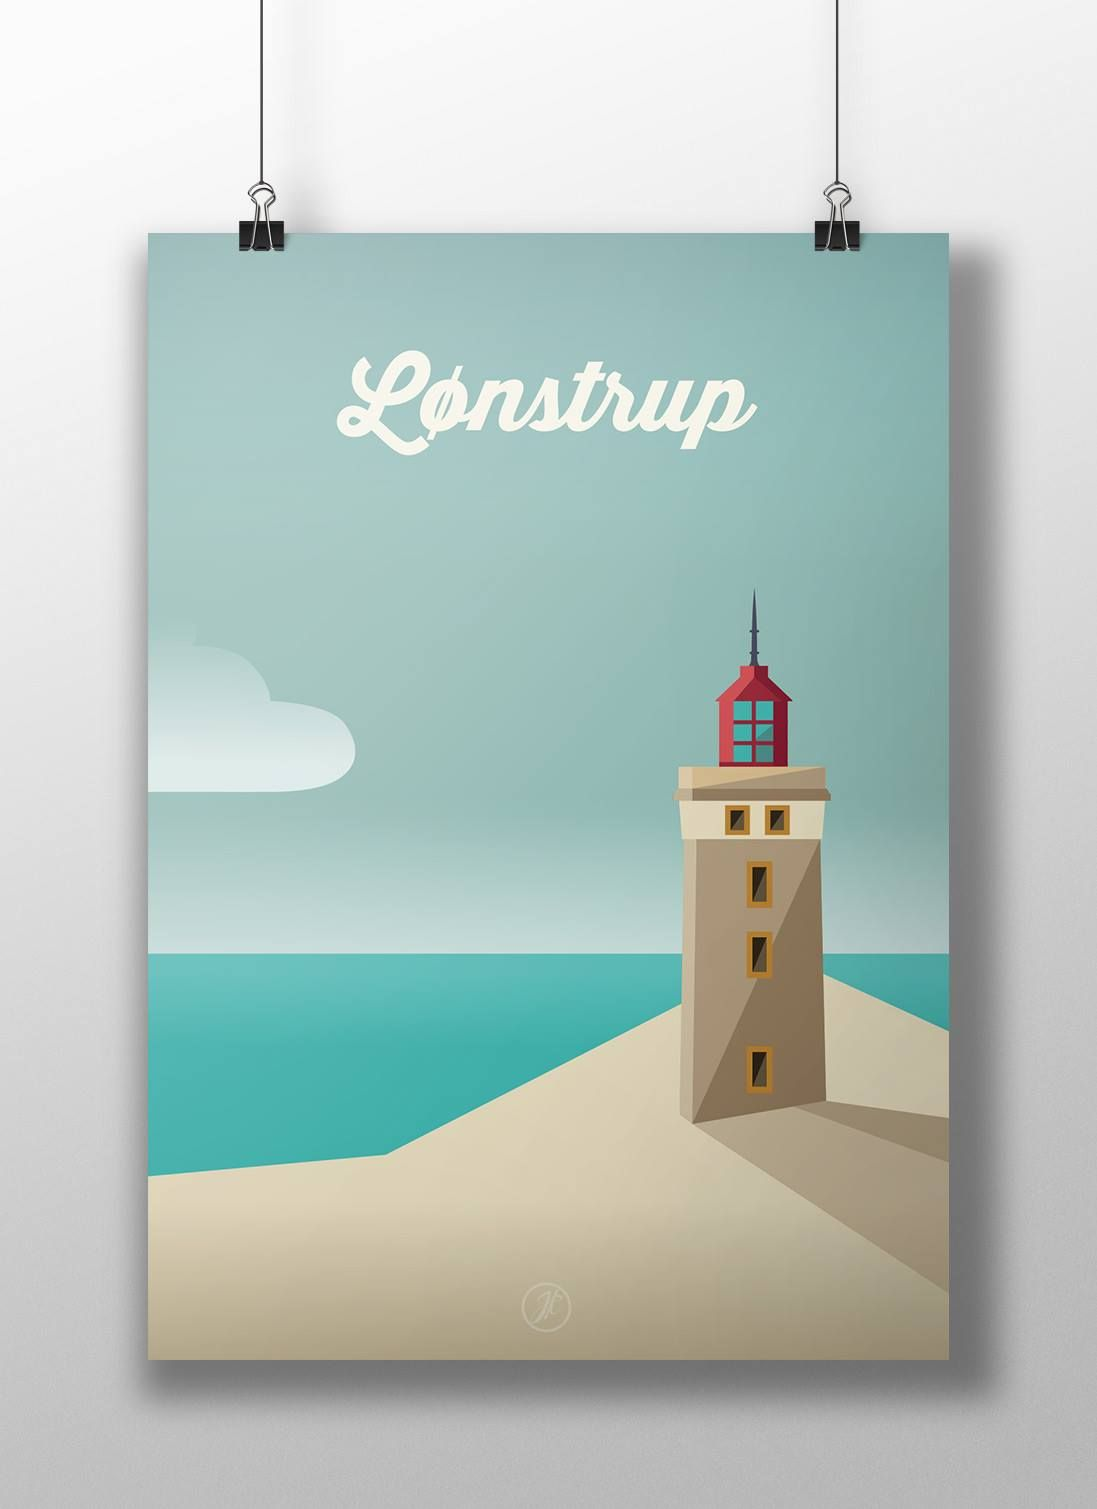 Design poster k3 - L Nstrup Poster Design Art Illustration Adobe Artwork Denmark